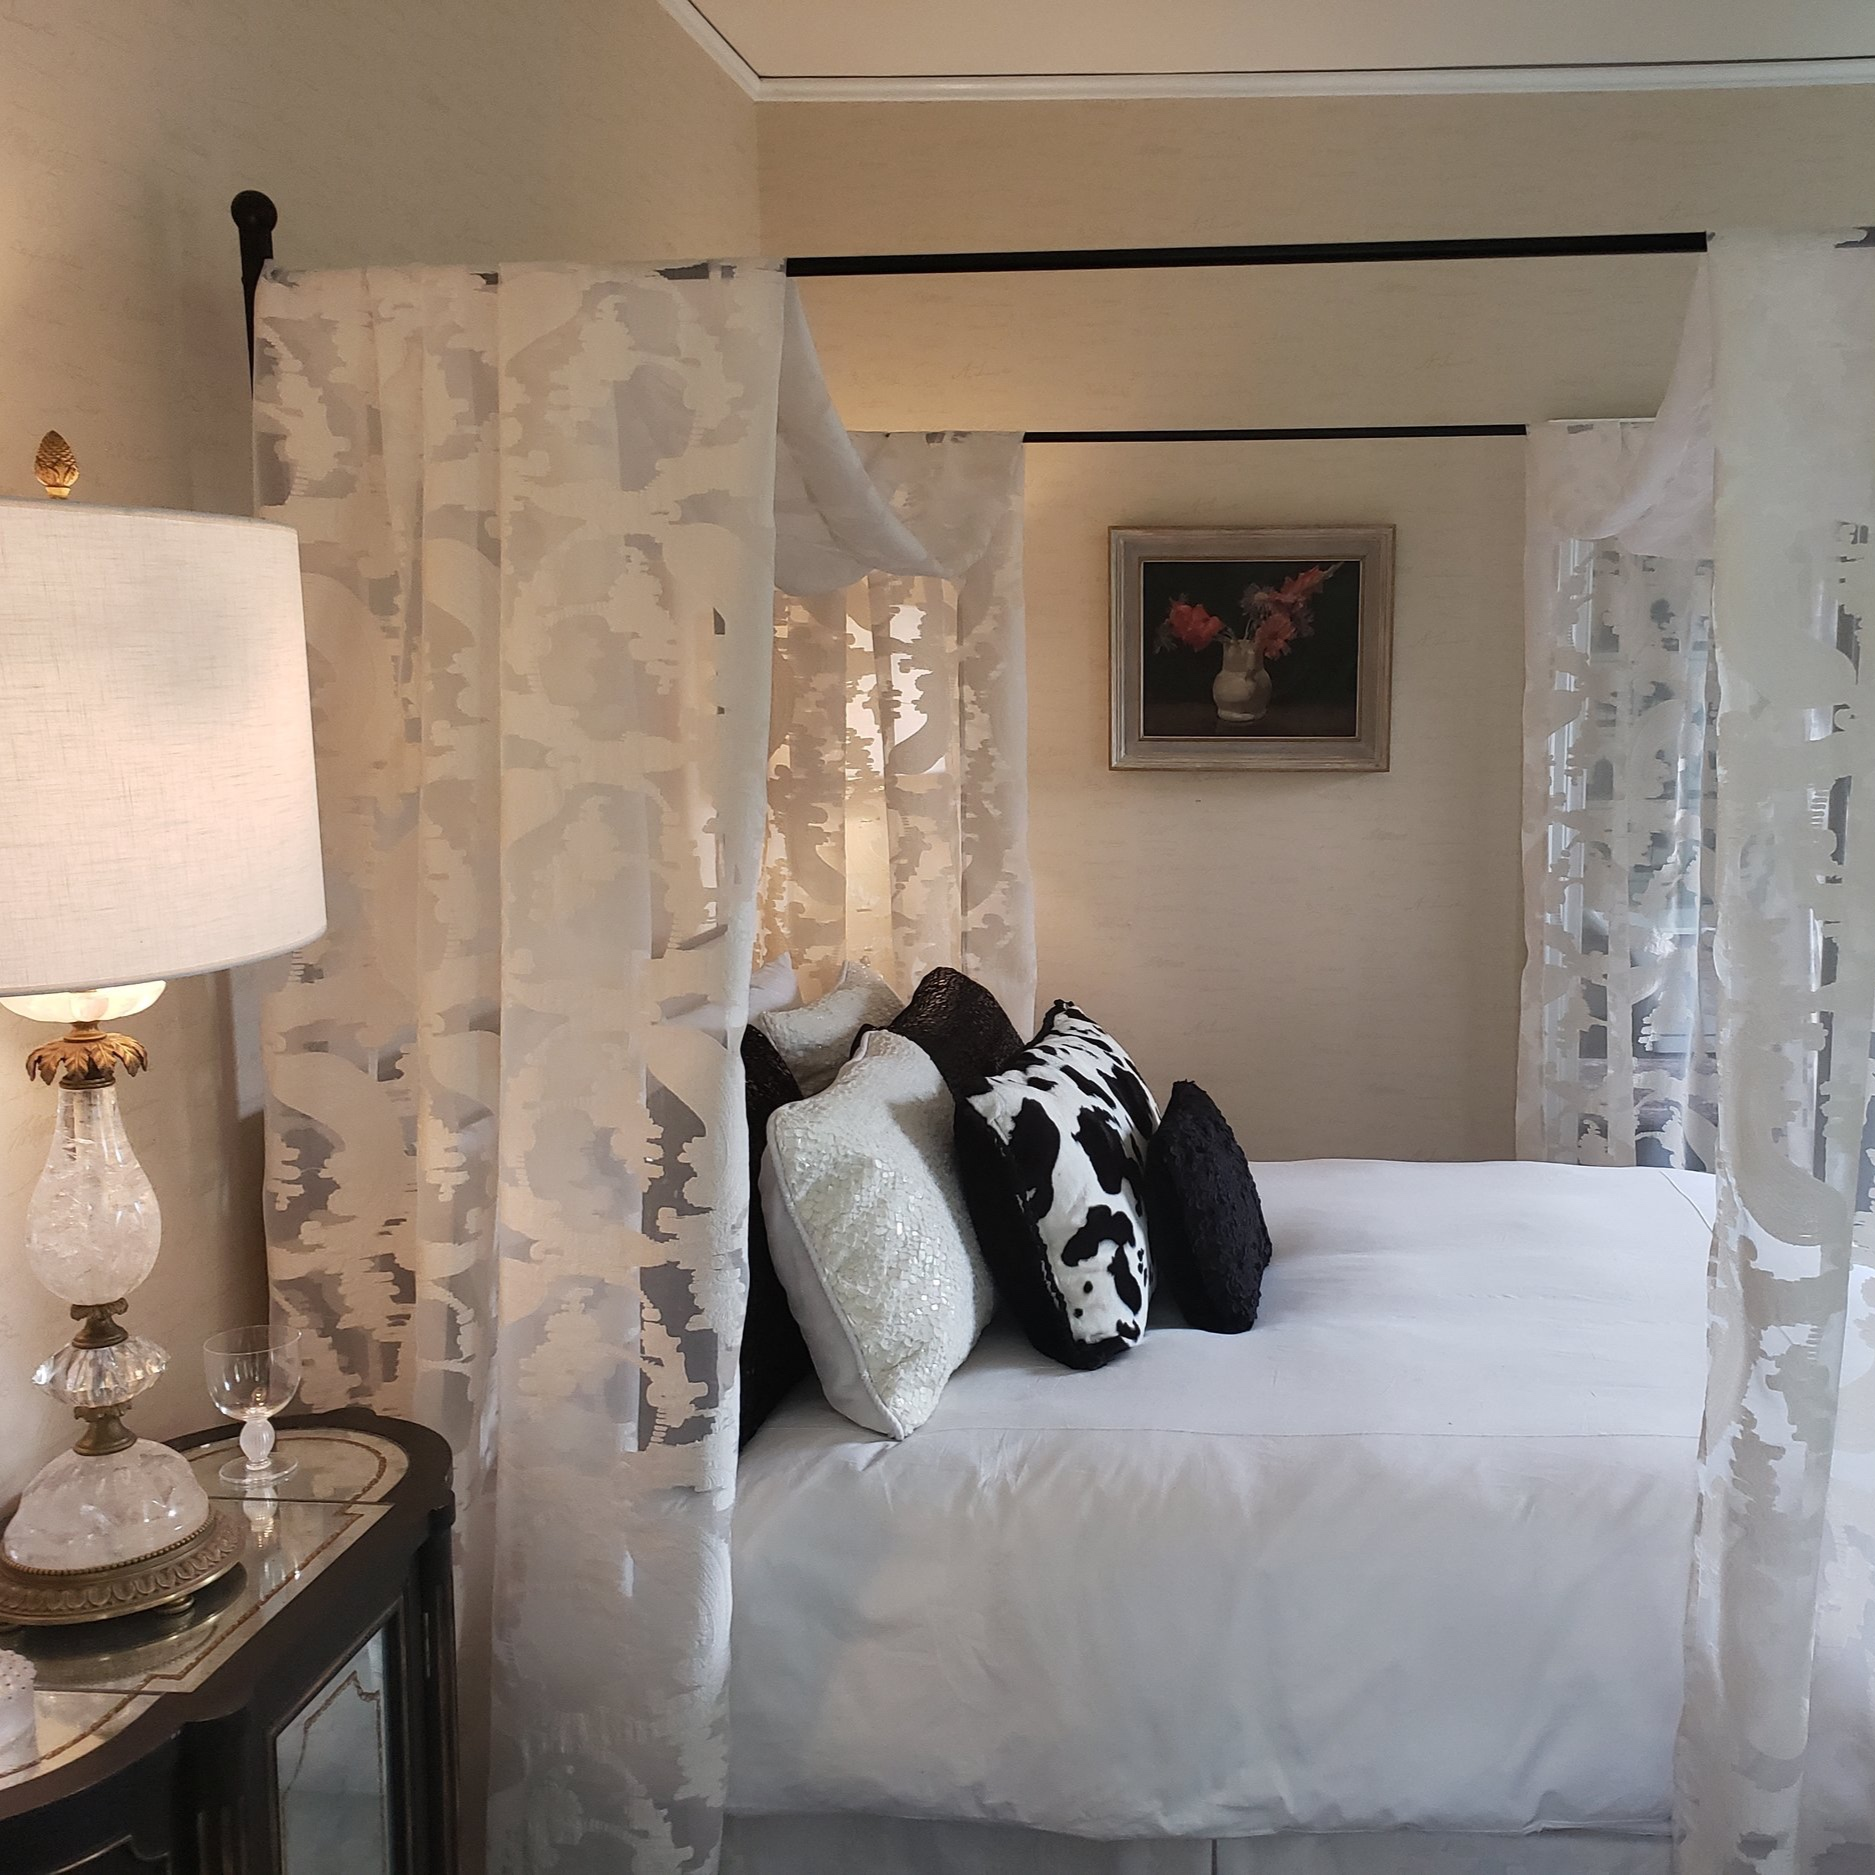 Deco-Lalique - Queen Canopy Bed • Fireplace • Large private bathroom with glass paneled shower & Kohler soaking tubLEARN MORE